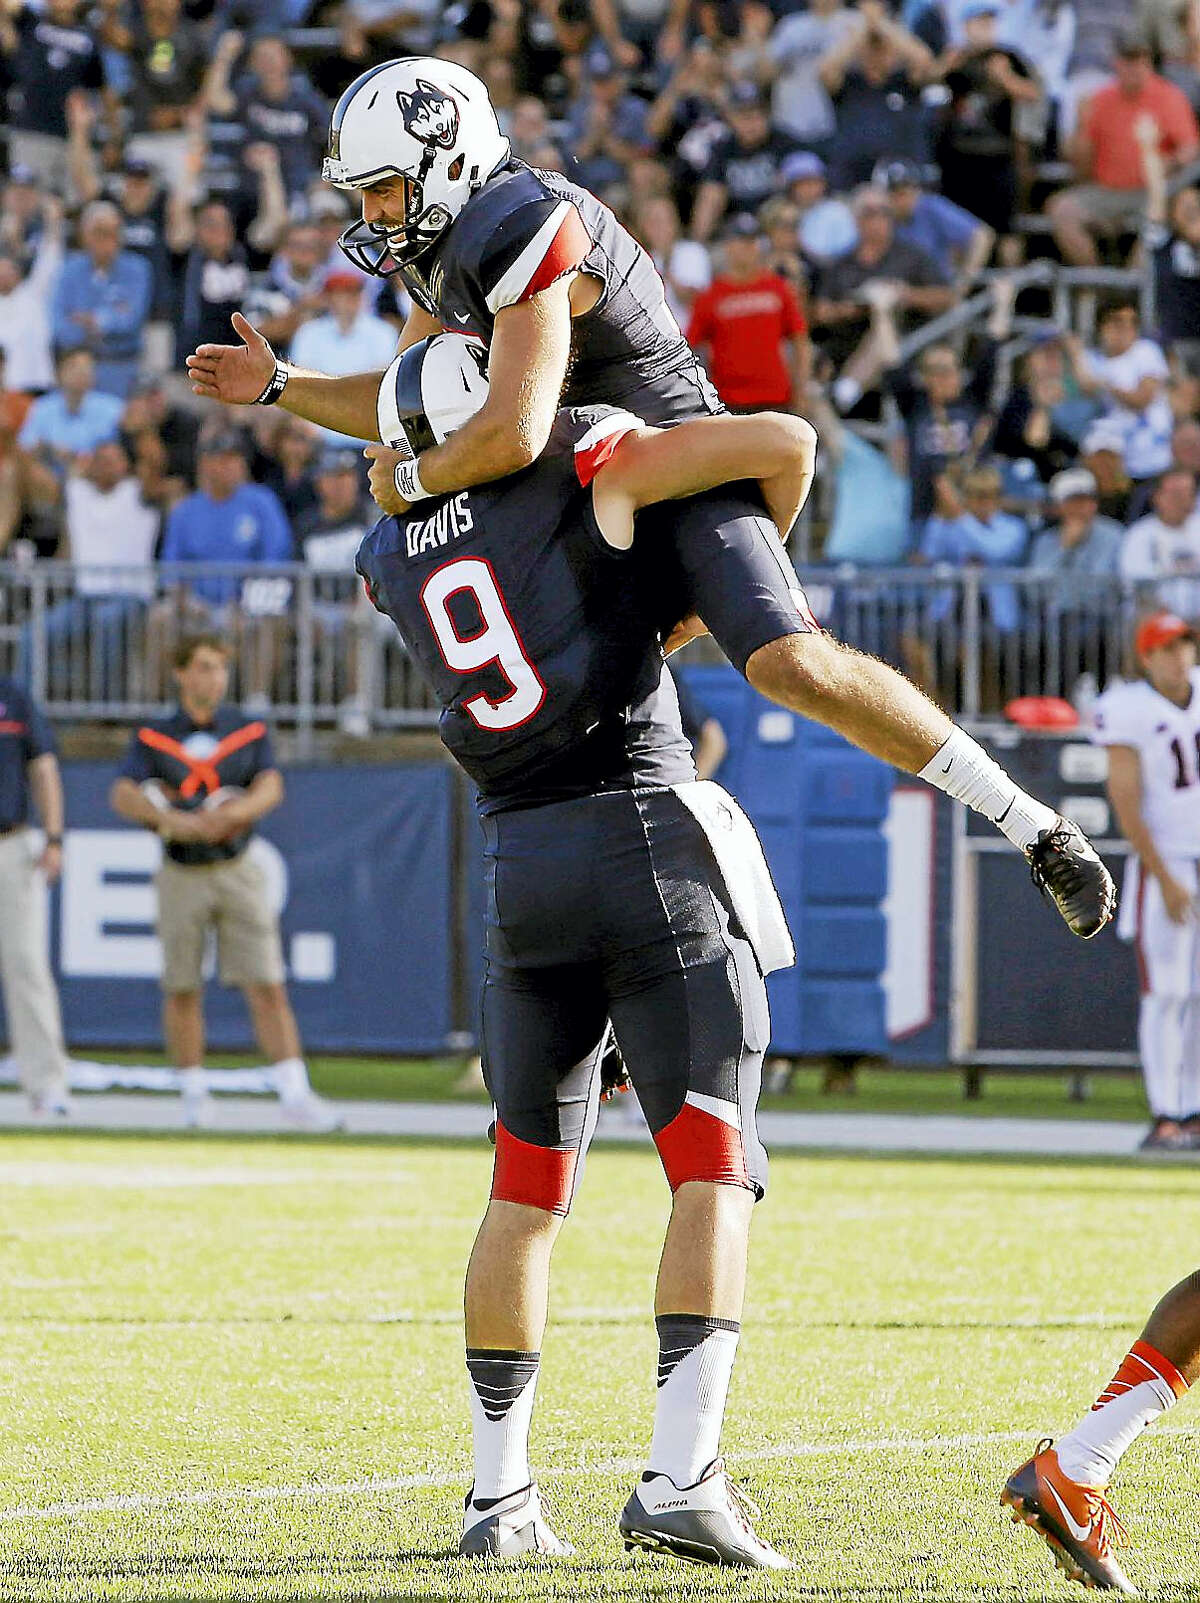 UConn placekicker Bobby Puyol, top, was named to the CoSIDA Academic District 1 team.